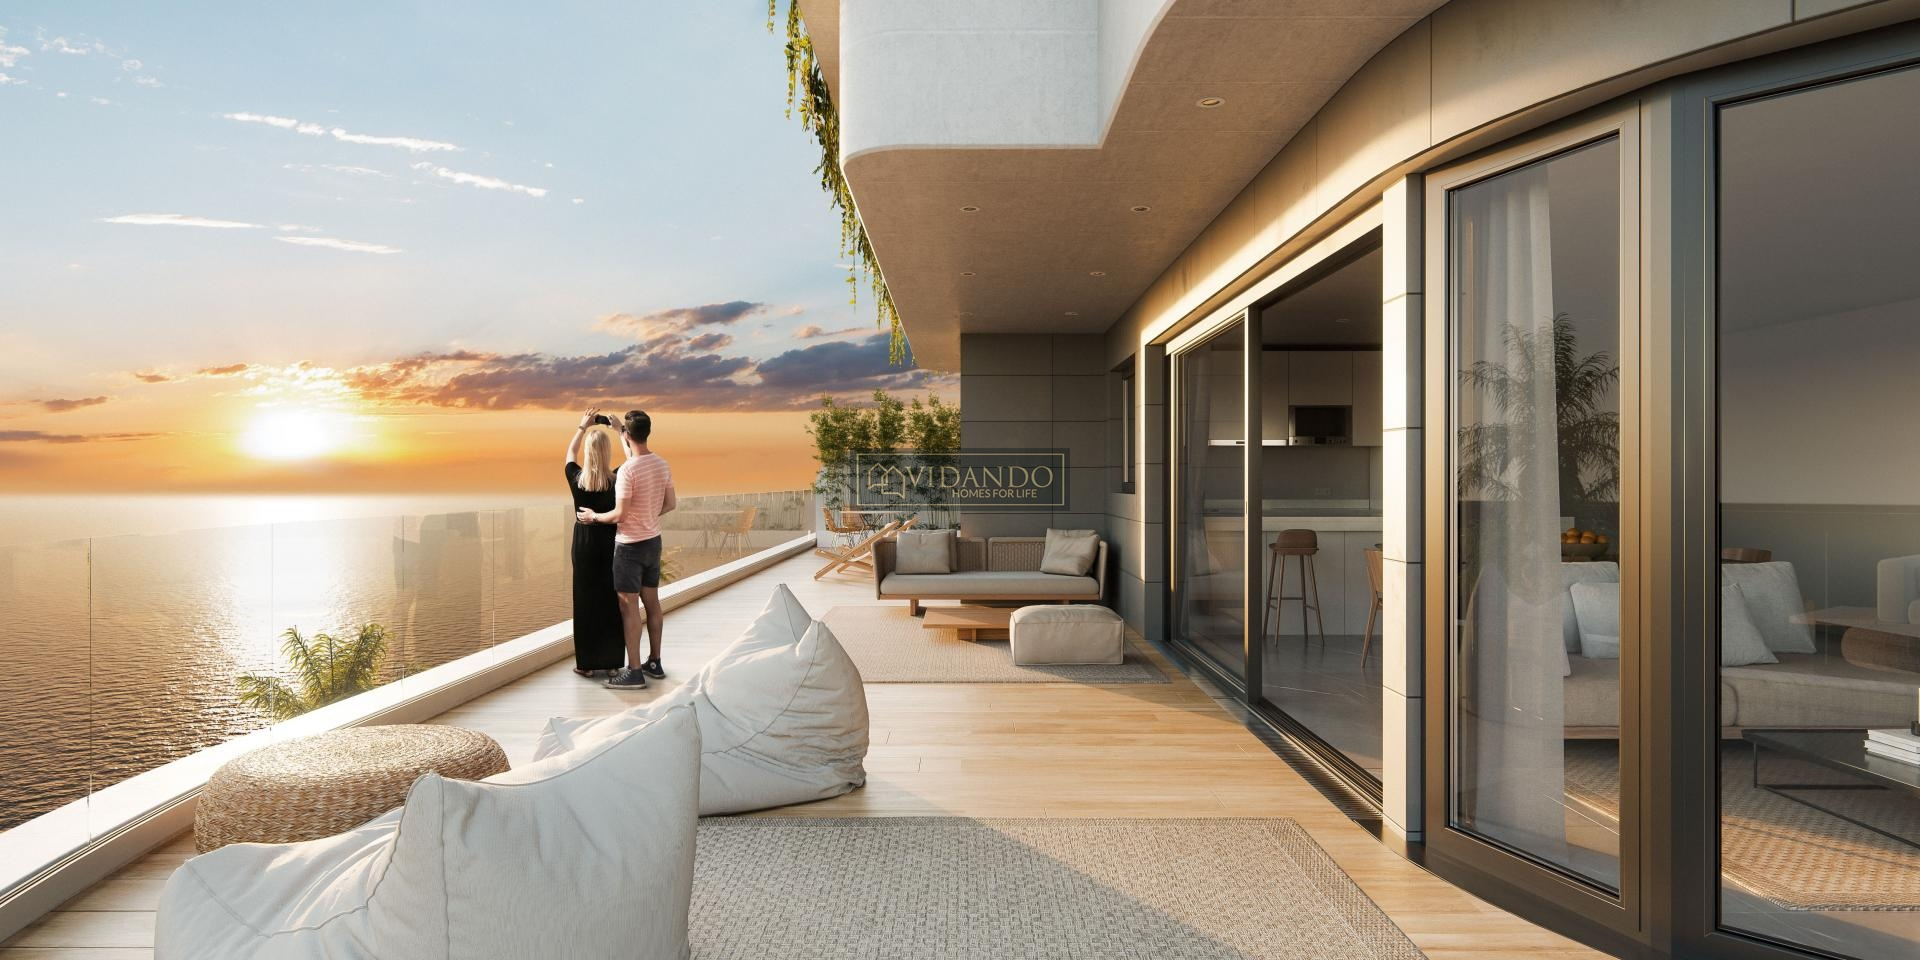 2 bedroom Apartment with terrace in Aguilas - New build in Vidando